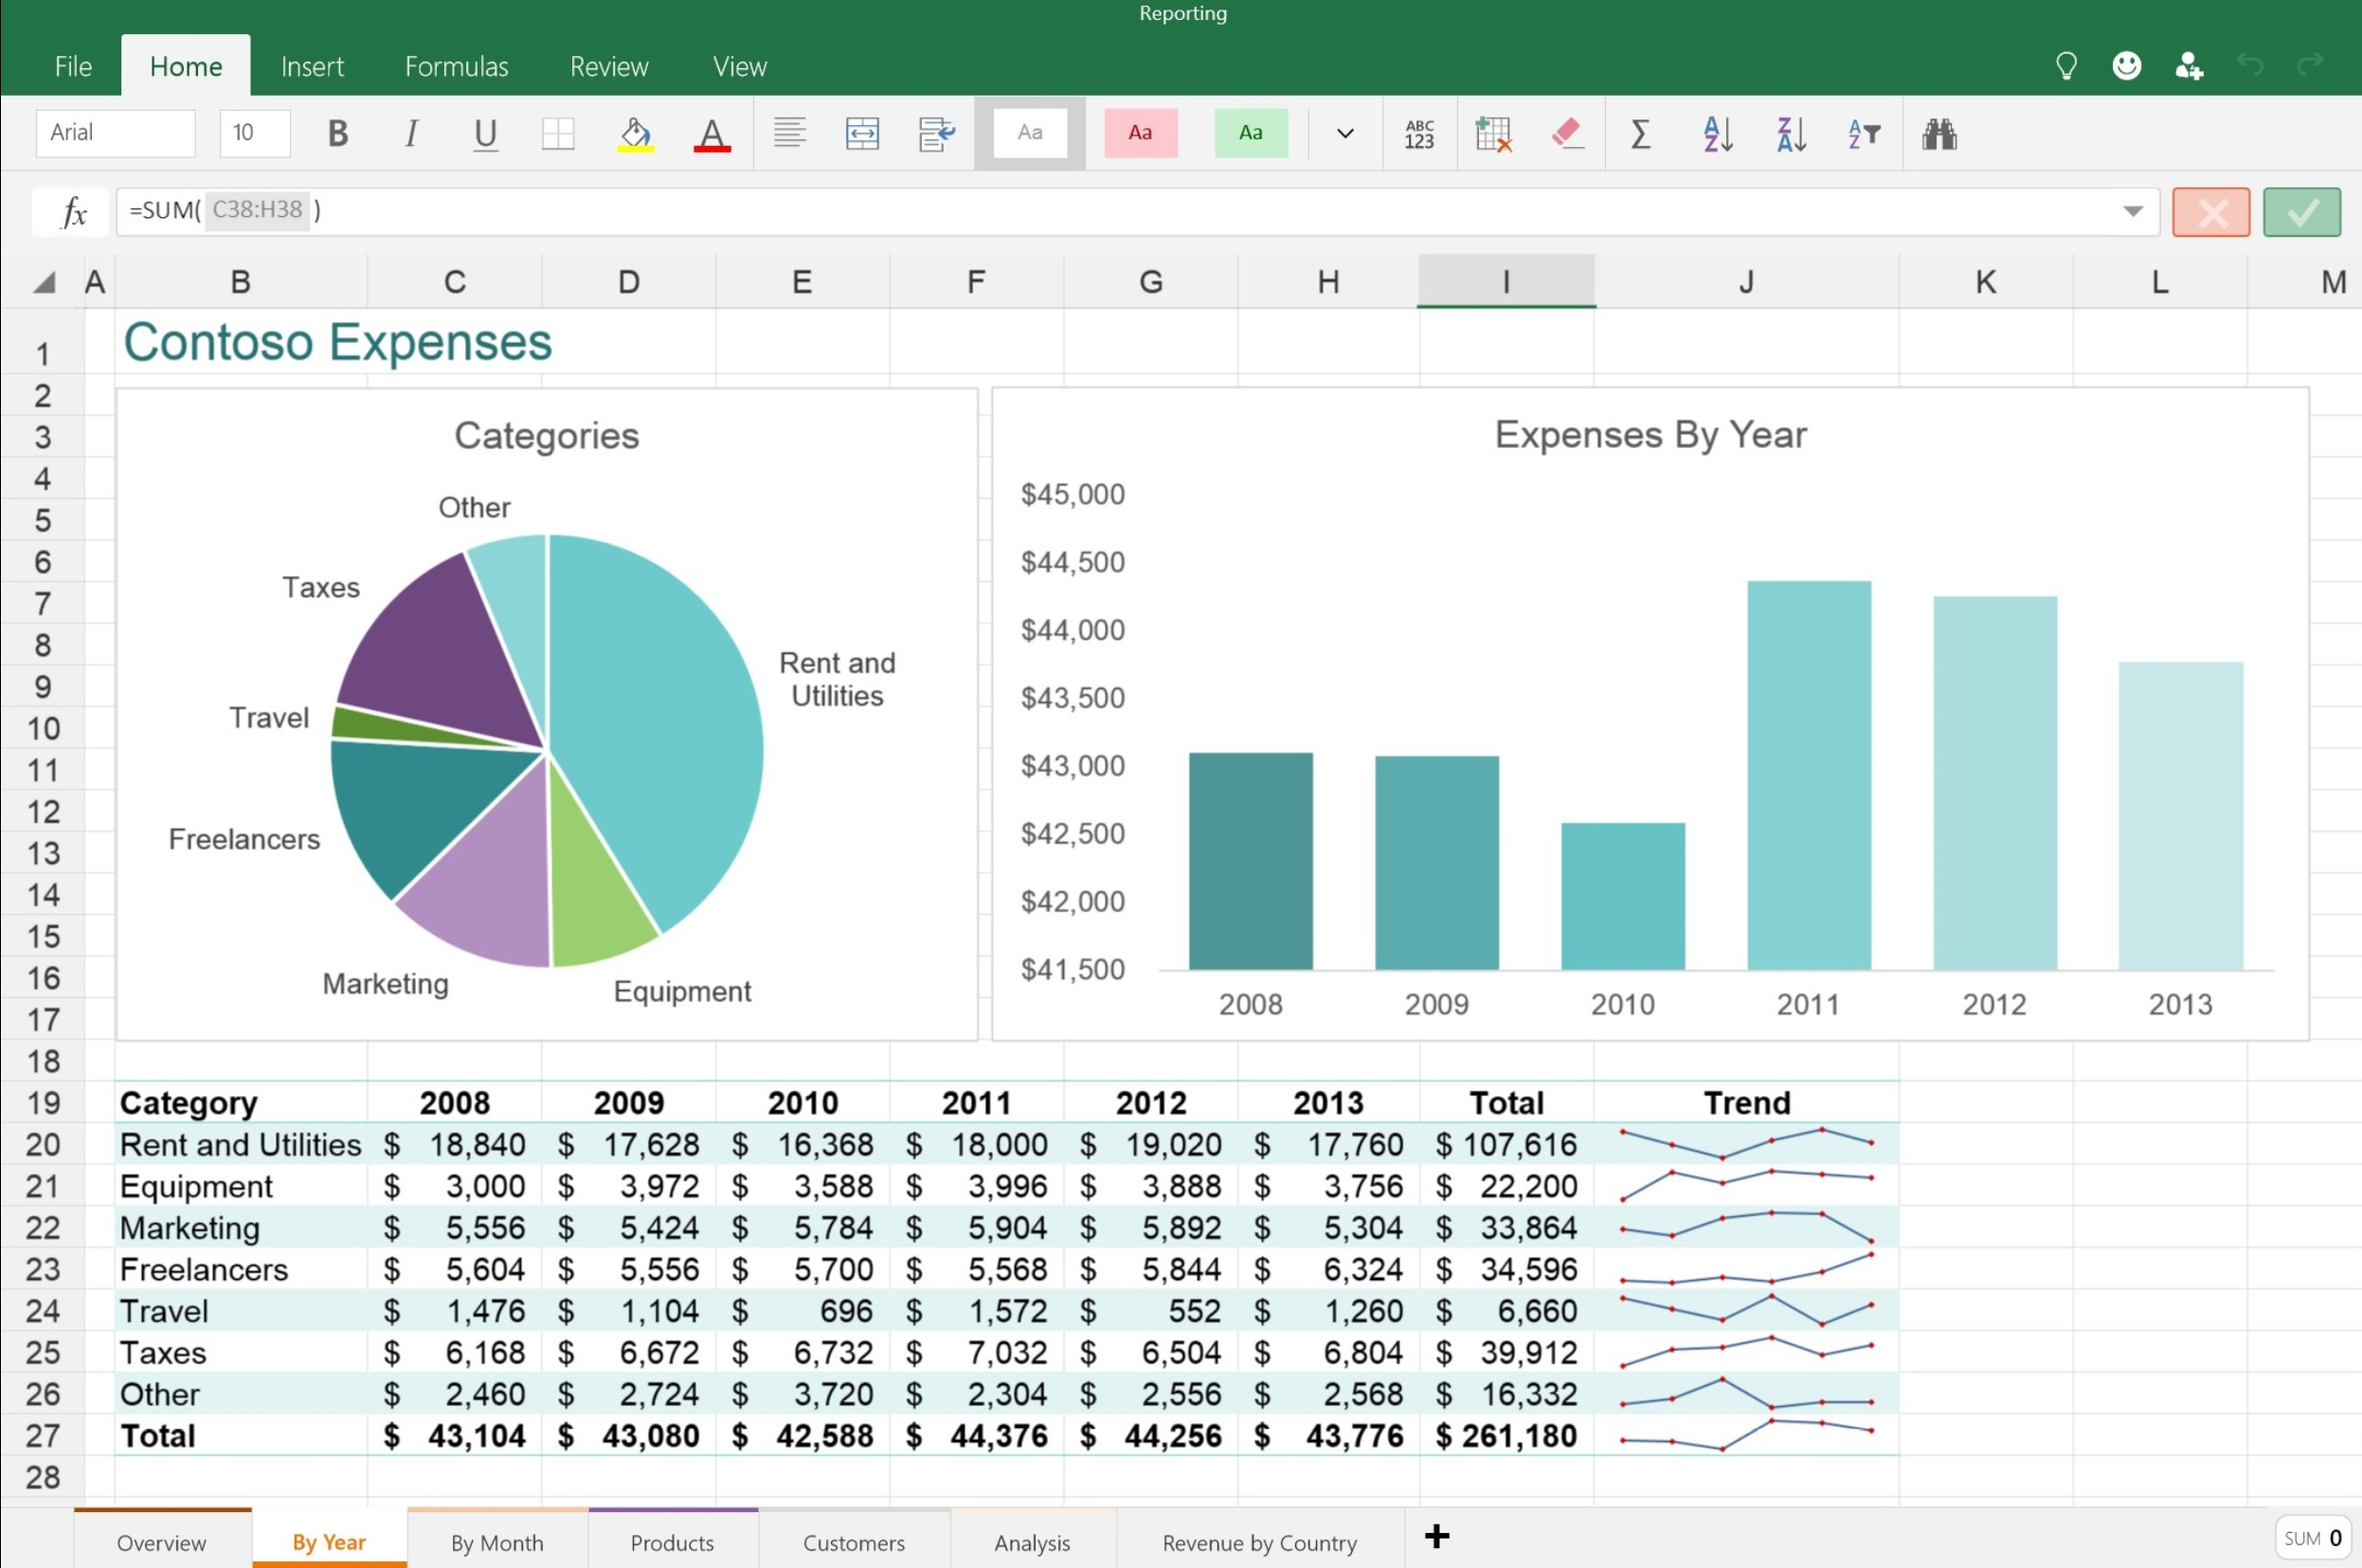 Ediblewildsus  Gorgeous Features Available In The New Word Excel And Powerpoint Apps For  With Interesting Excel Touch App  With Extraordinary Excel Repeat Command Also Microsoft Excel Assessment In Addition Adding And Subtracting Time In Excel And Forecasting With Excel As Well As Lookup Functions Excel Additionally Transpose Rows And Columns In Excel From Mspowerusercom With Ediblewildsus  Interesting Features Available In The New Word Excel And Powerpoint Apps For  With Extraordinary Excel Touch App  And Gorgeous Excel Repeat Command Also Microsoft Excel Assessment In Addition Adding And Subtracting Time In Excel From Mspowerusercom